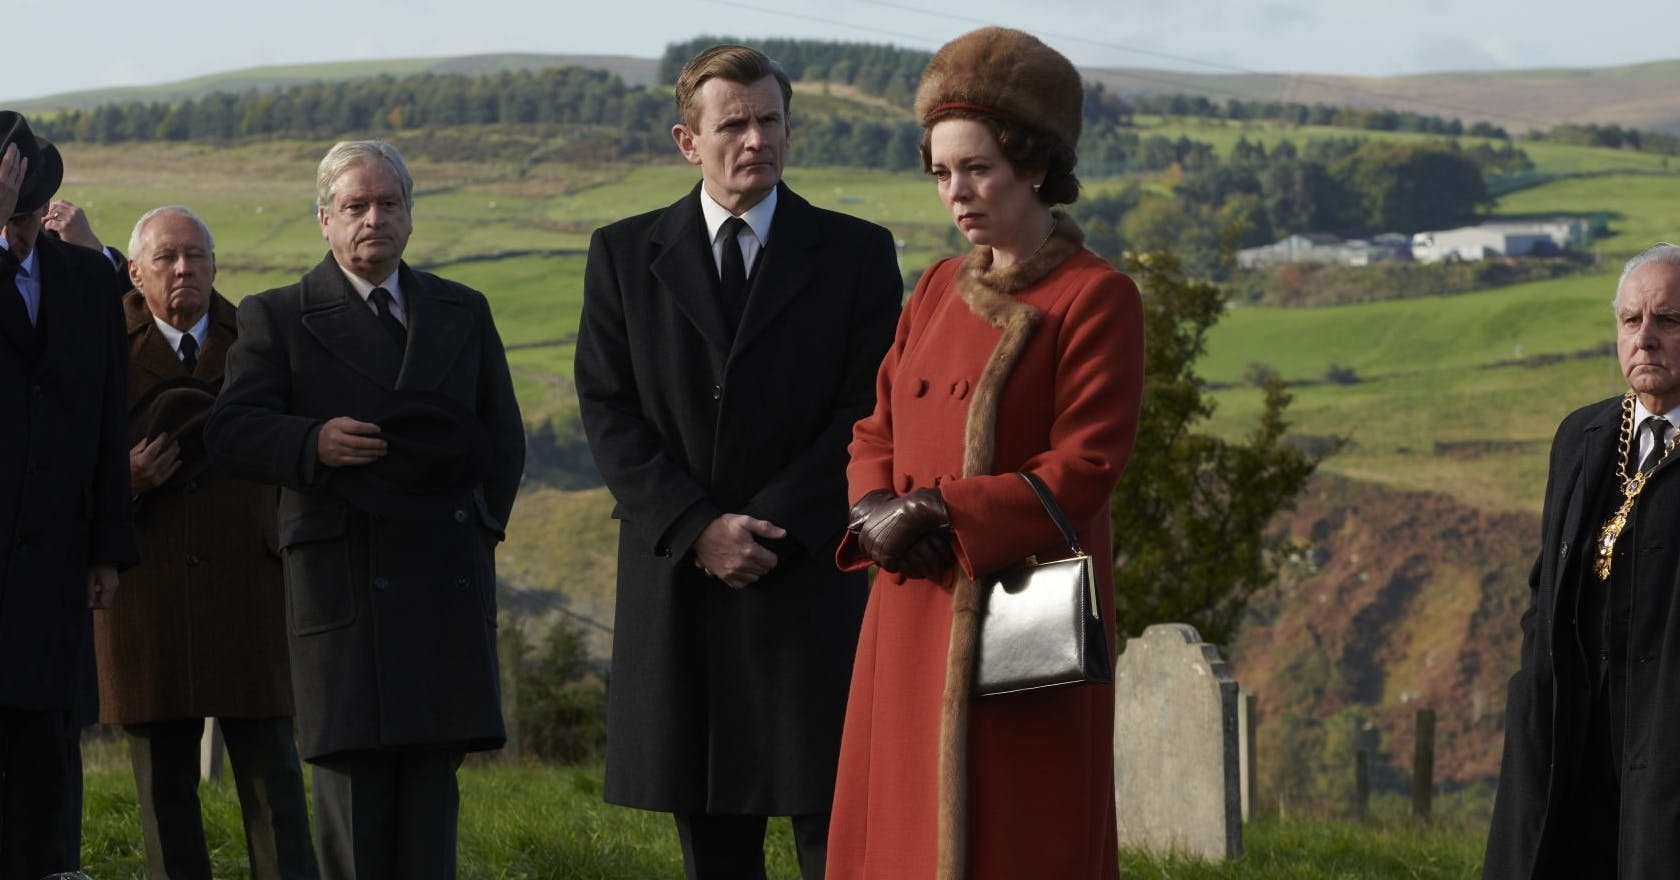 The tragic true story behind the best episode of season 3 of The Crown